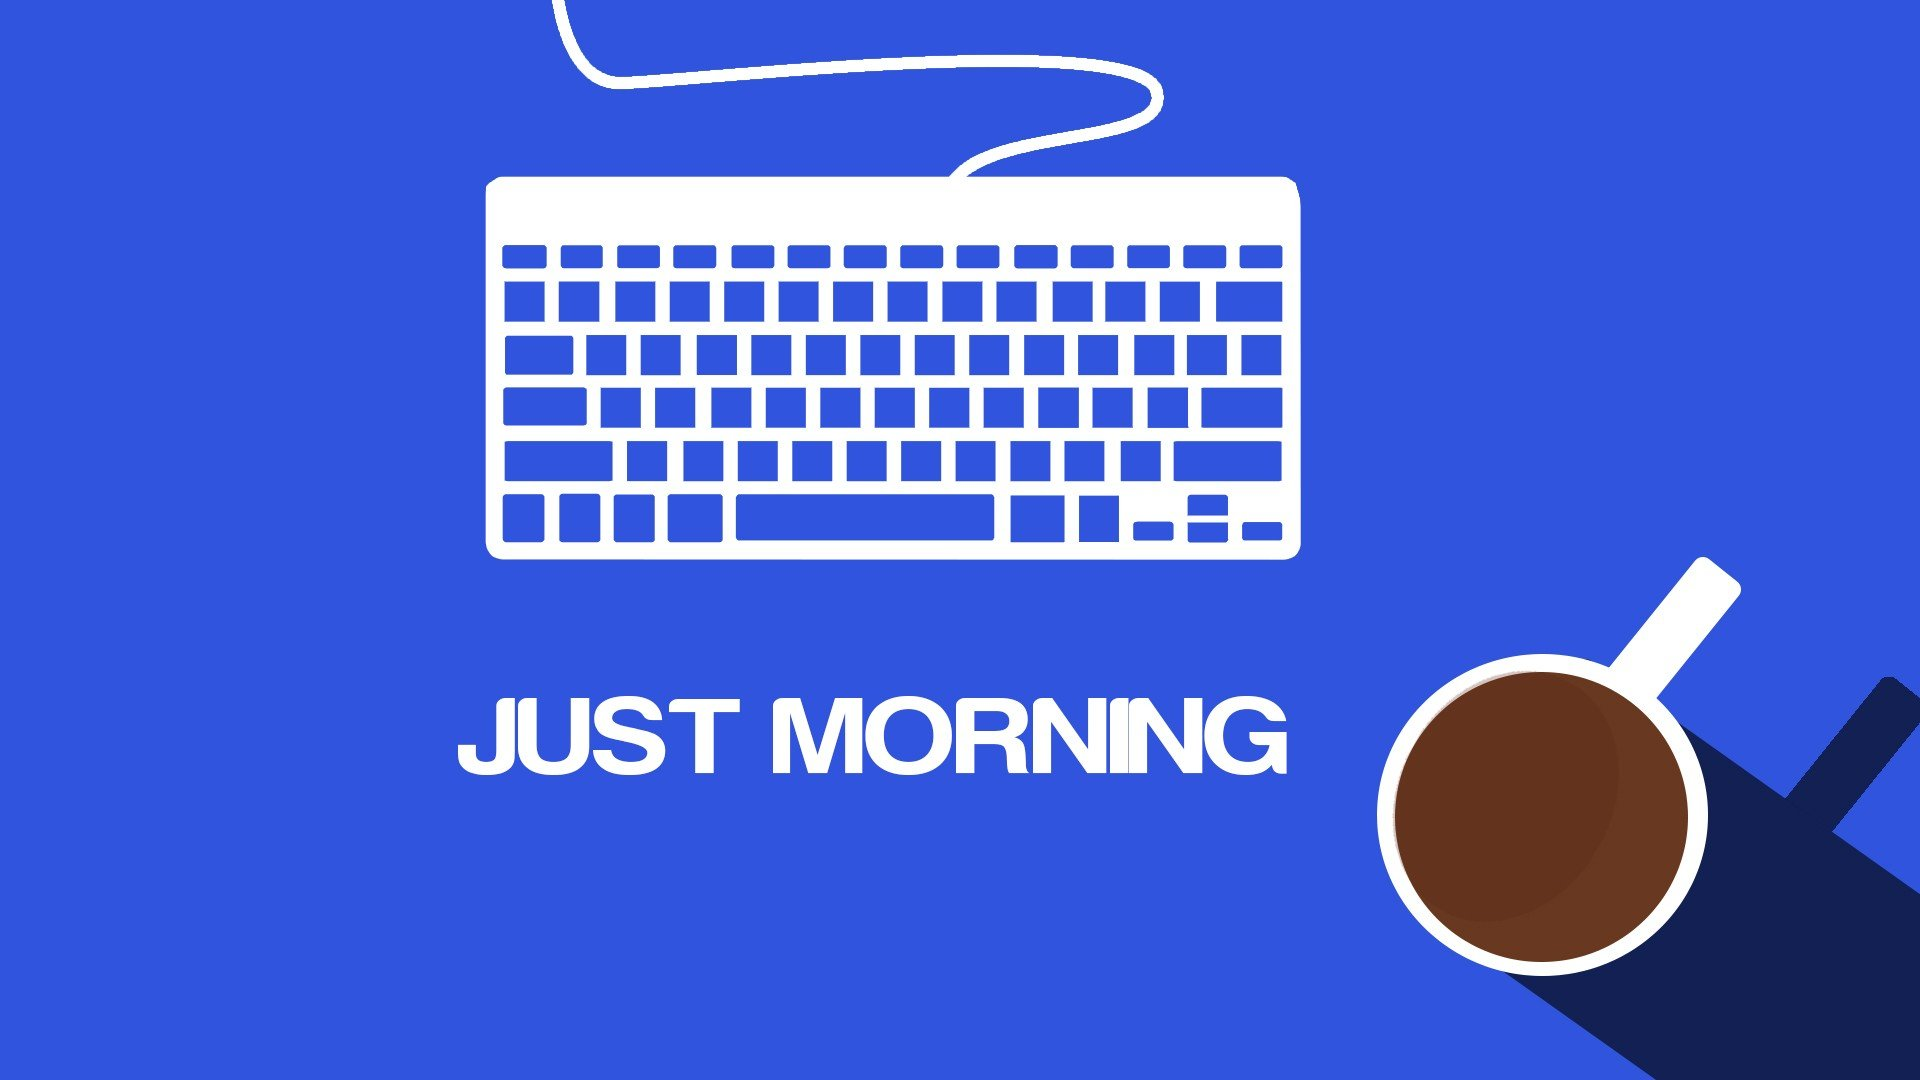 Motivational Quotes Hd Wallpapers For Pc Minimalistic Coffee Keyboards Morning Blue Background